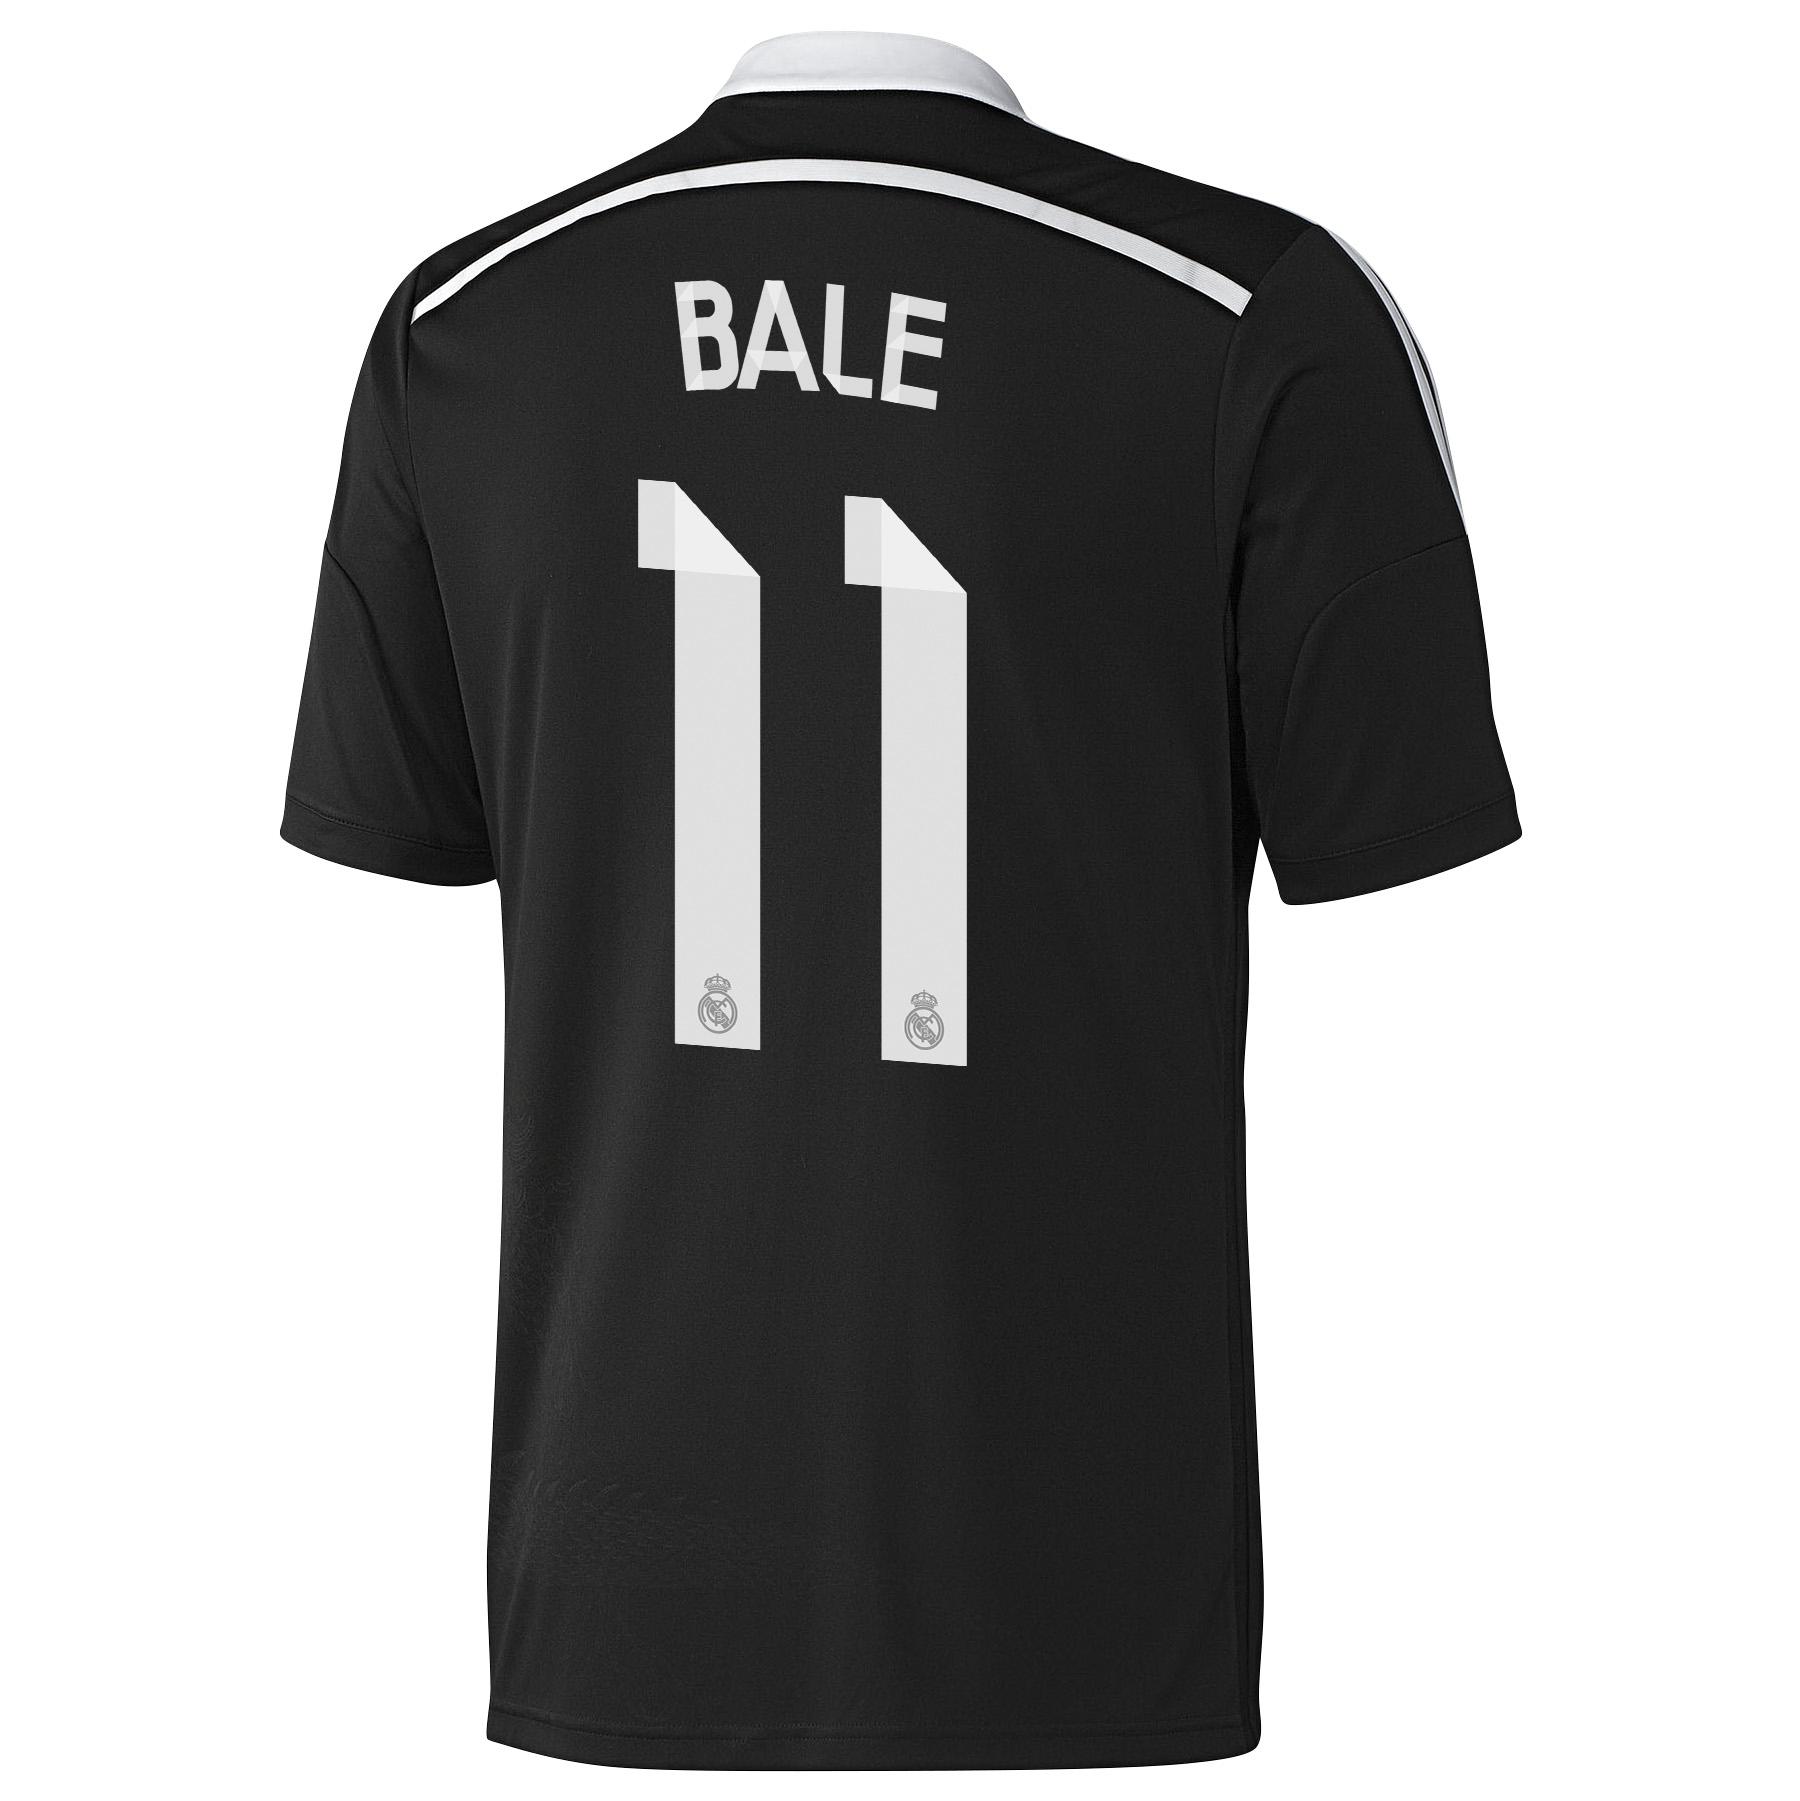 Real Madrid Third Shirt 2014/15 Black with Bale 11 printing